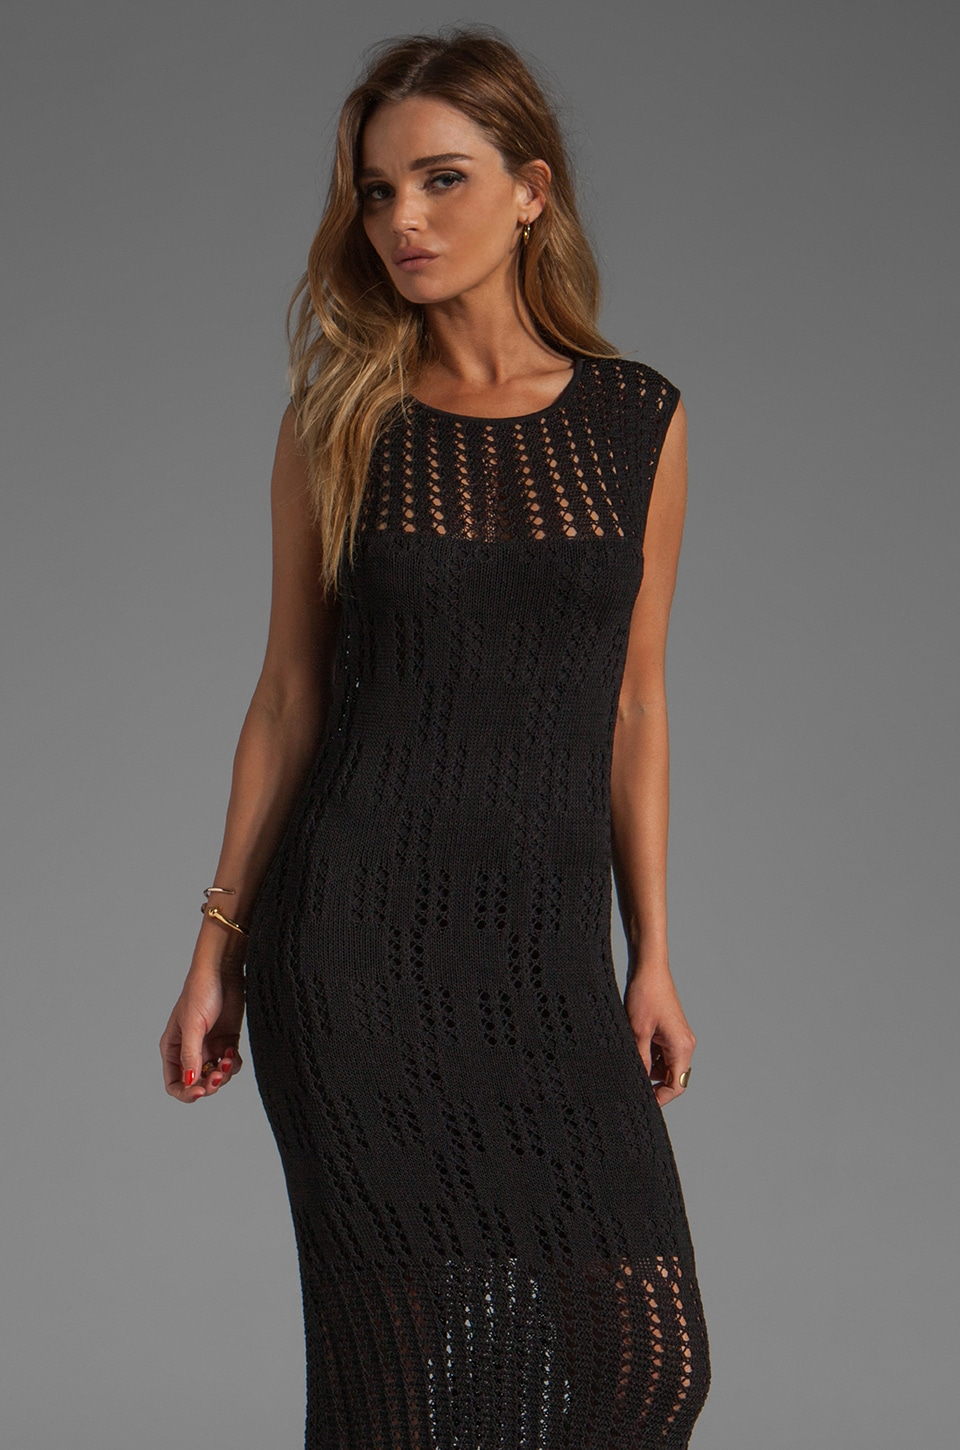 Catherine Malandrino Long Cap Sleeve Pointelle and Crochet Dress in Noir